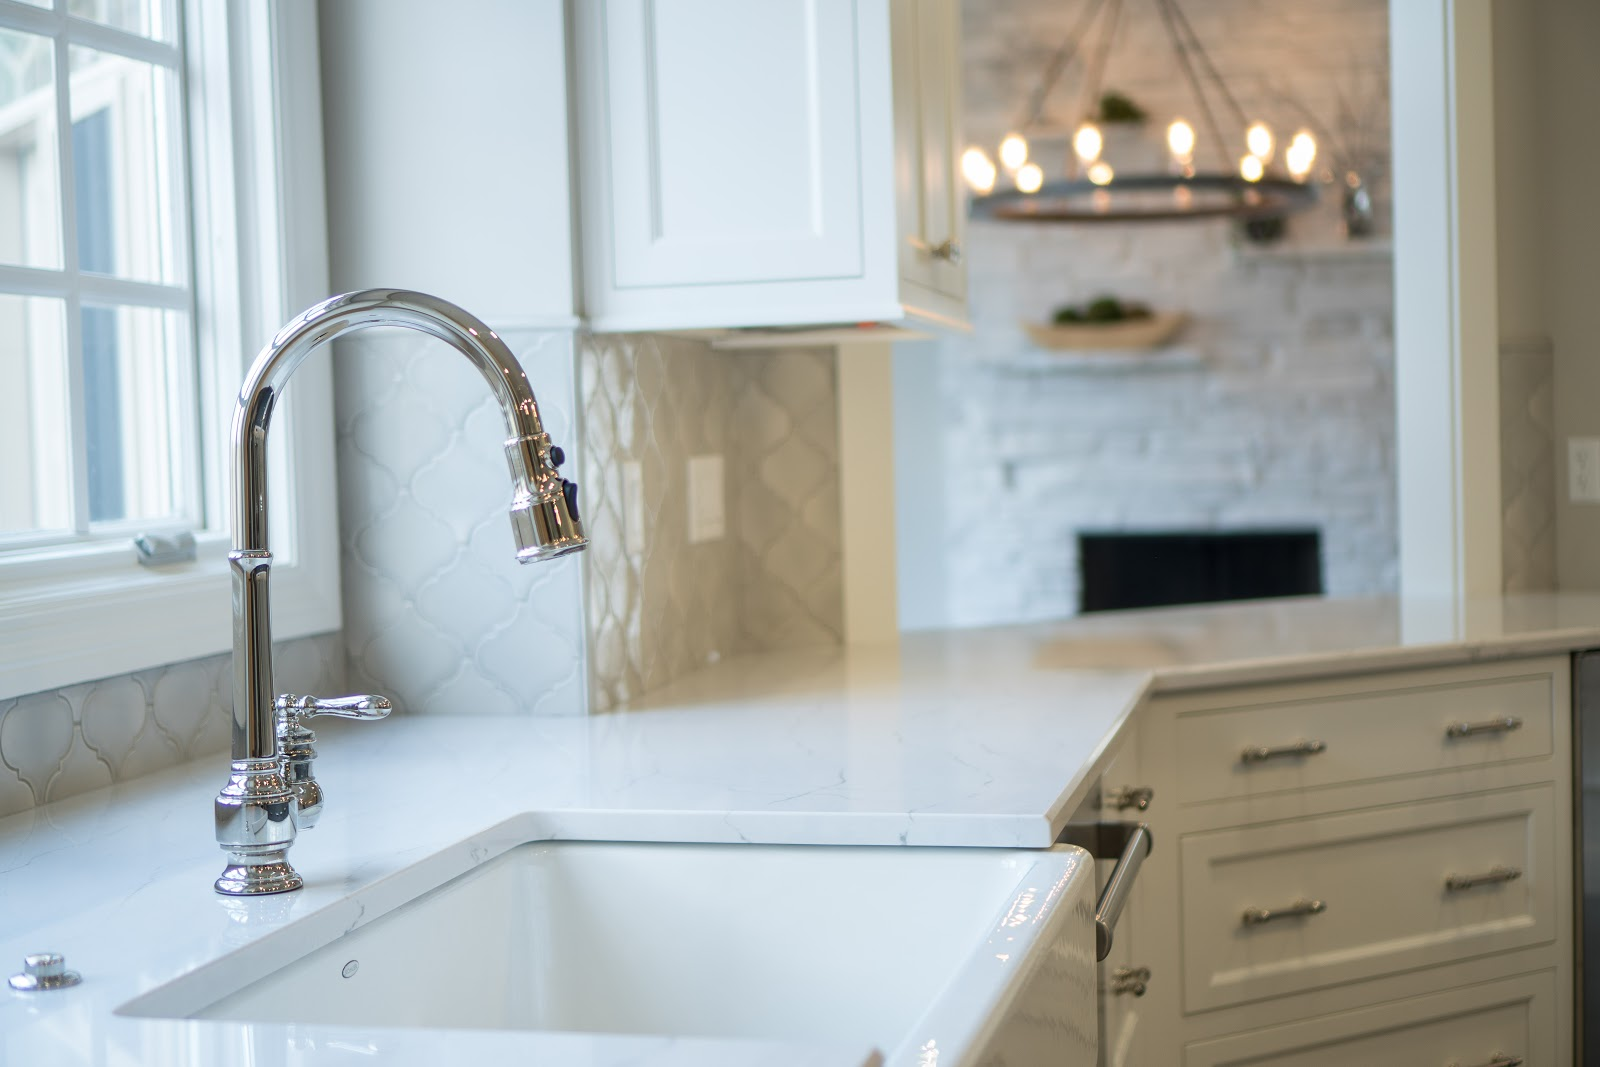 Matthewson Kitchen Sink with Chrome Faucet and White Counter Top